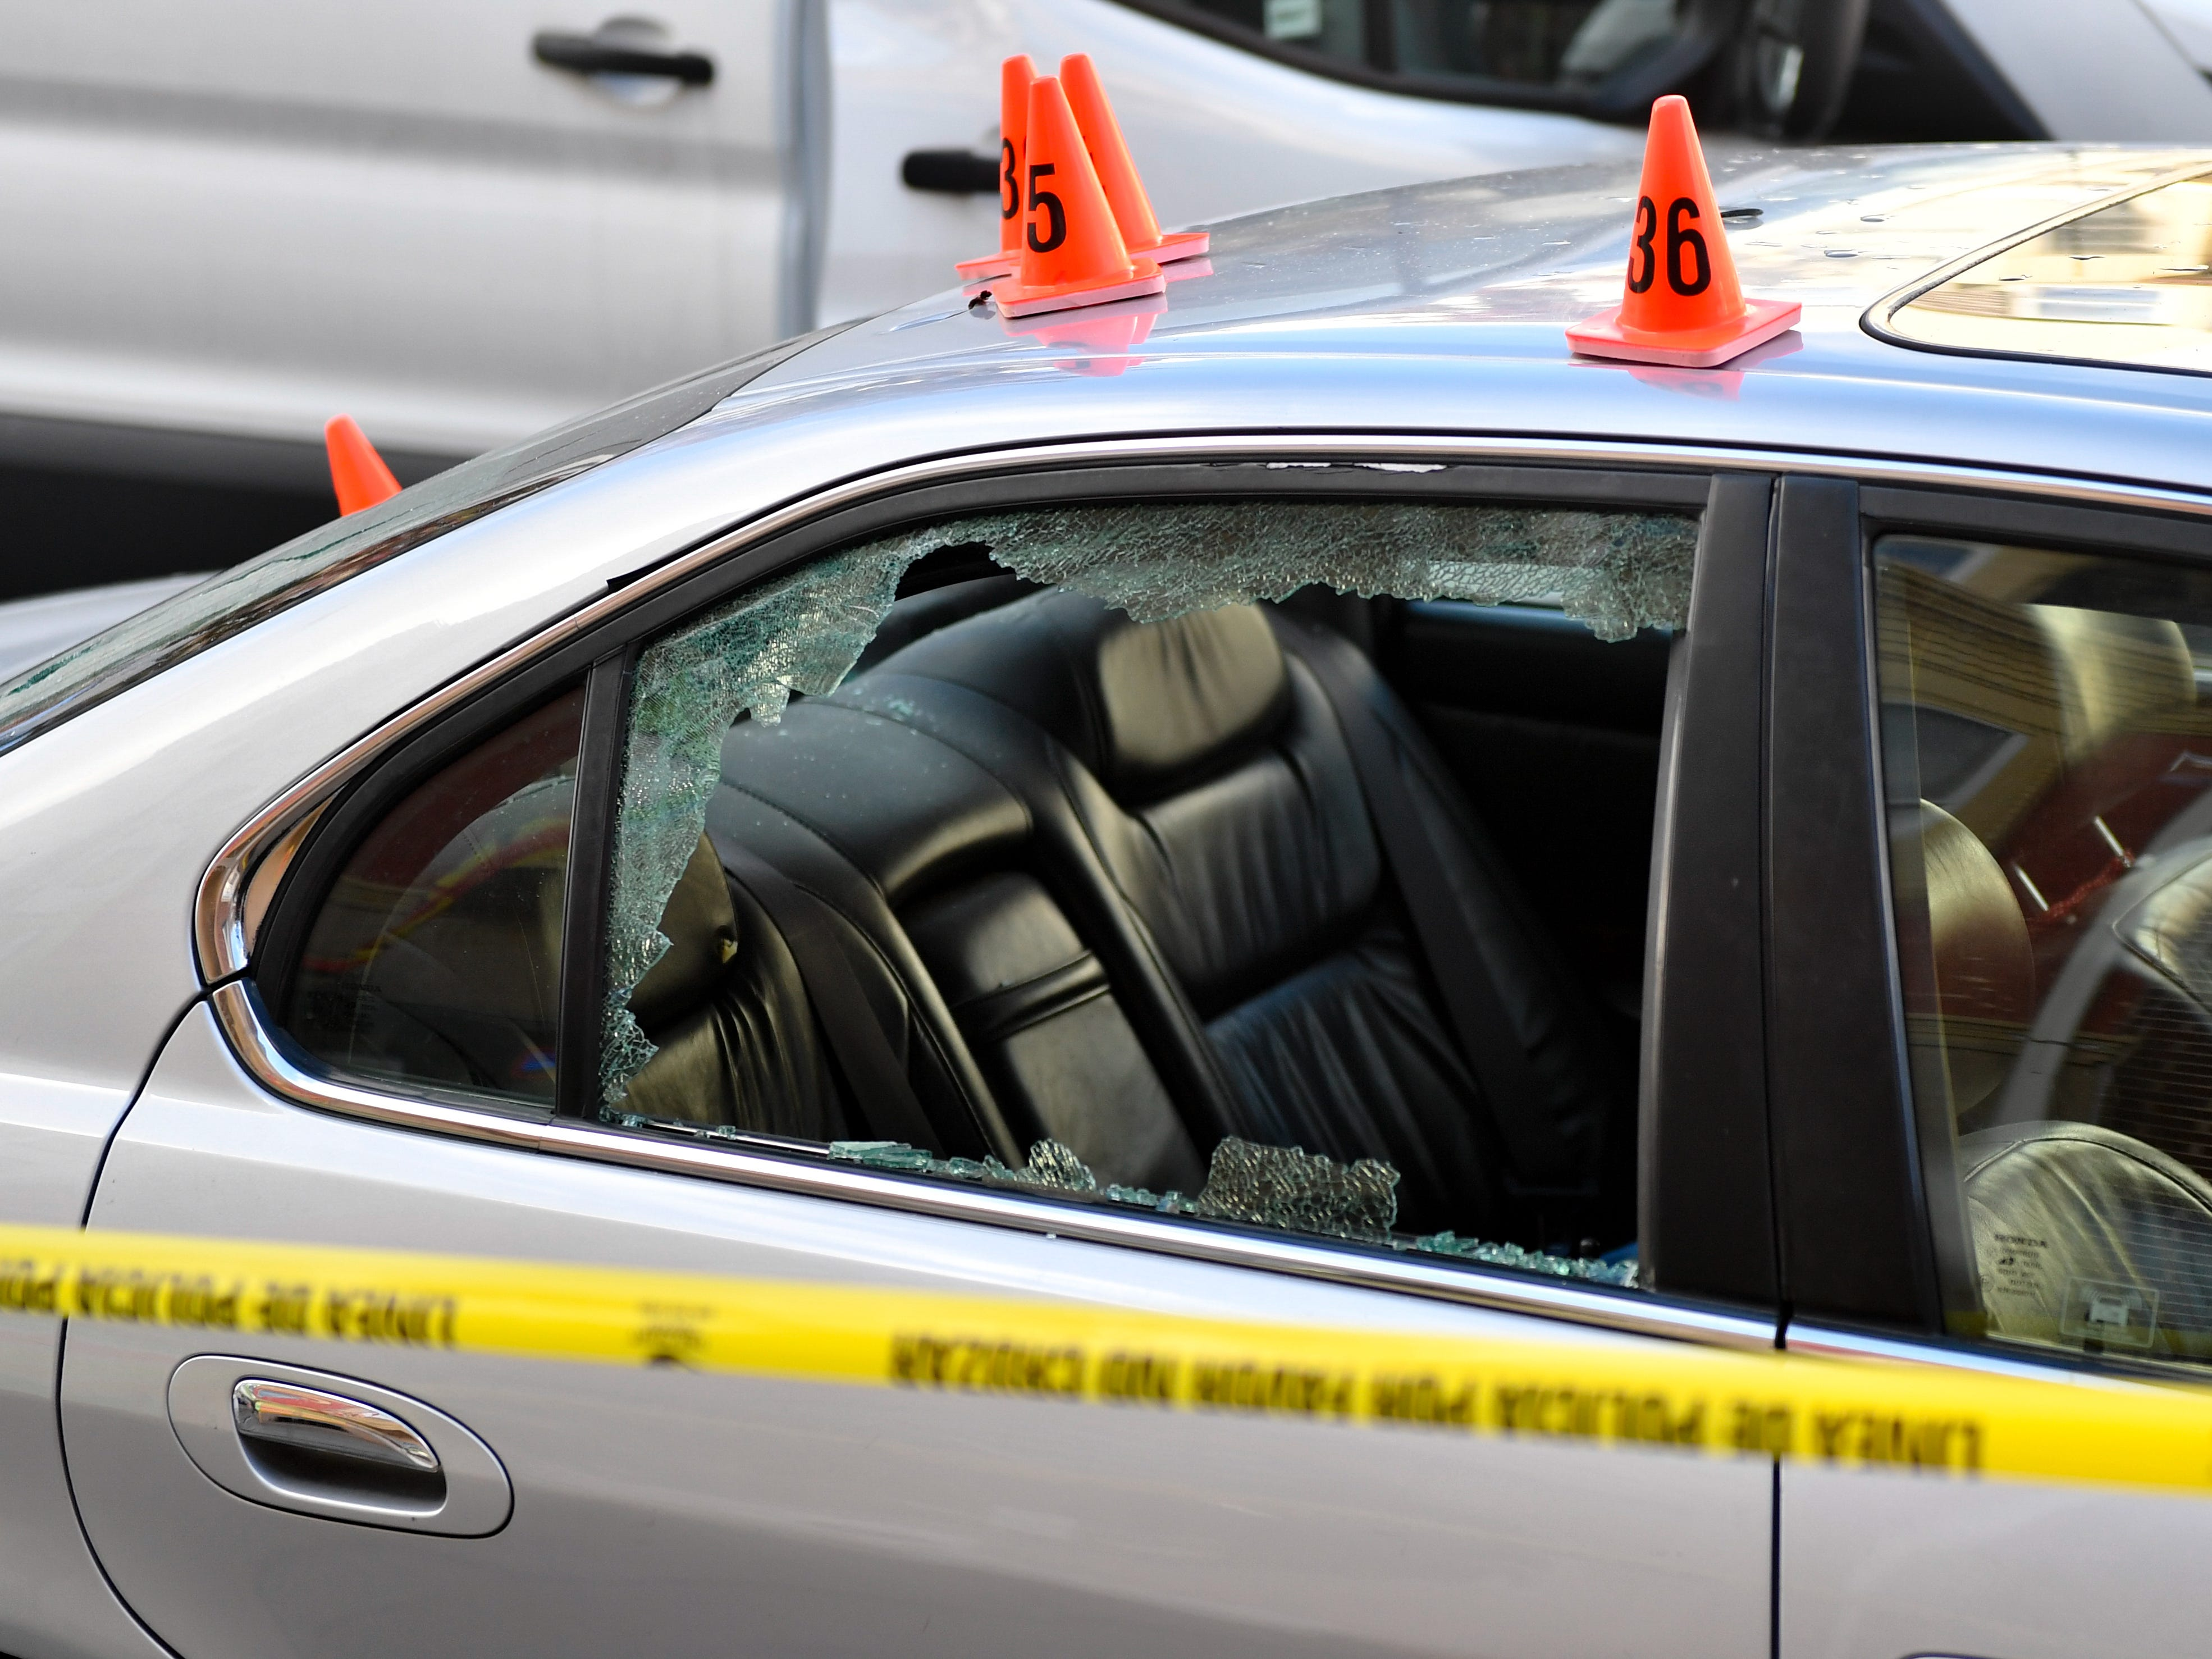 Police officers place small orange cones where bullet holes can be found on the cars, November 3, 2018.